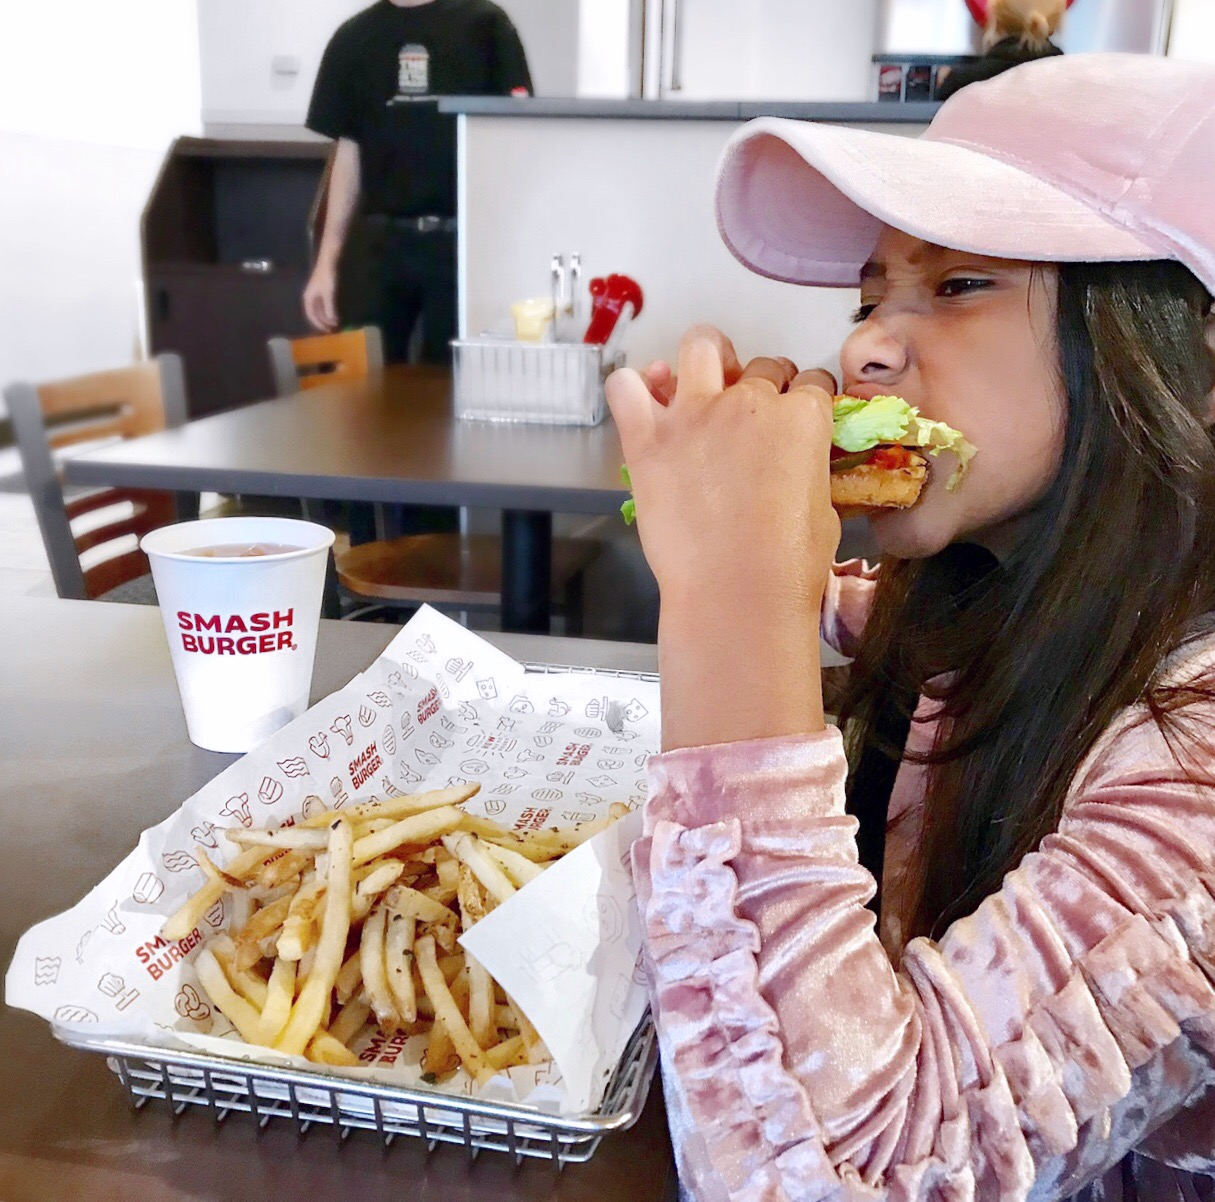 Kids eat free Charlotte, smash burger Charlotte